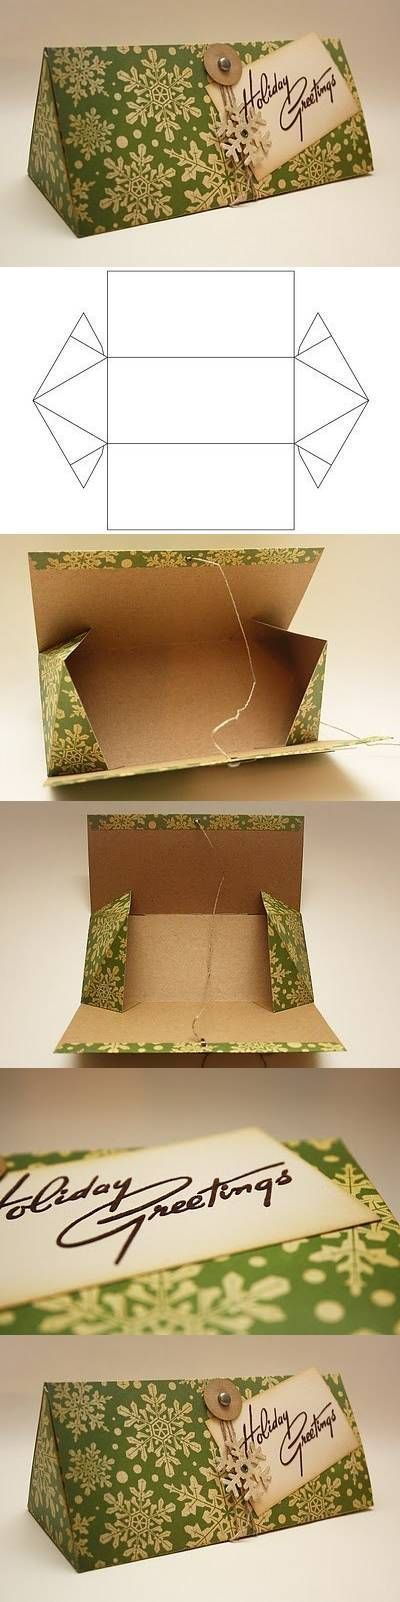 DIY Long Gift Box DIY Projects / UsefulDIY.com